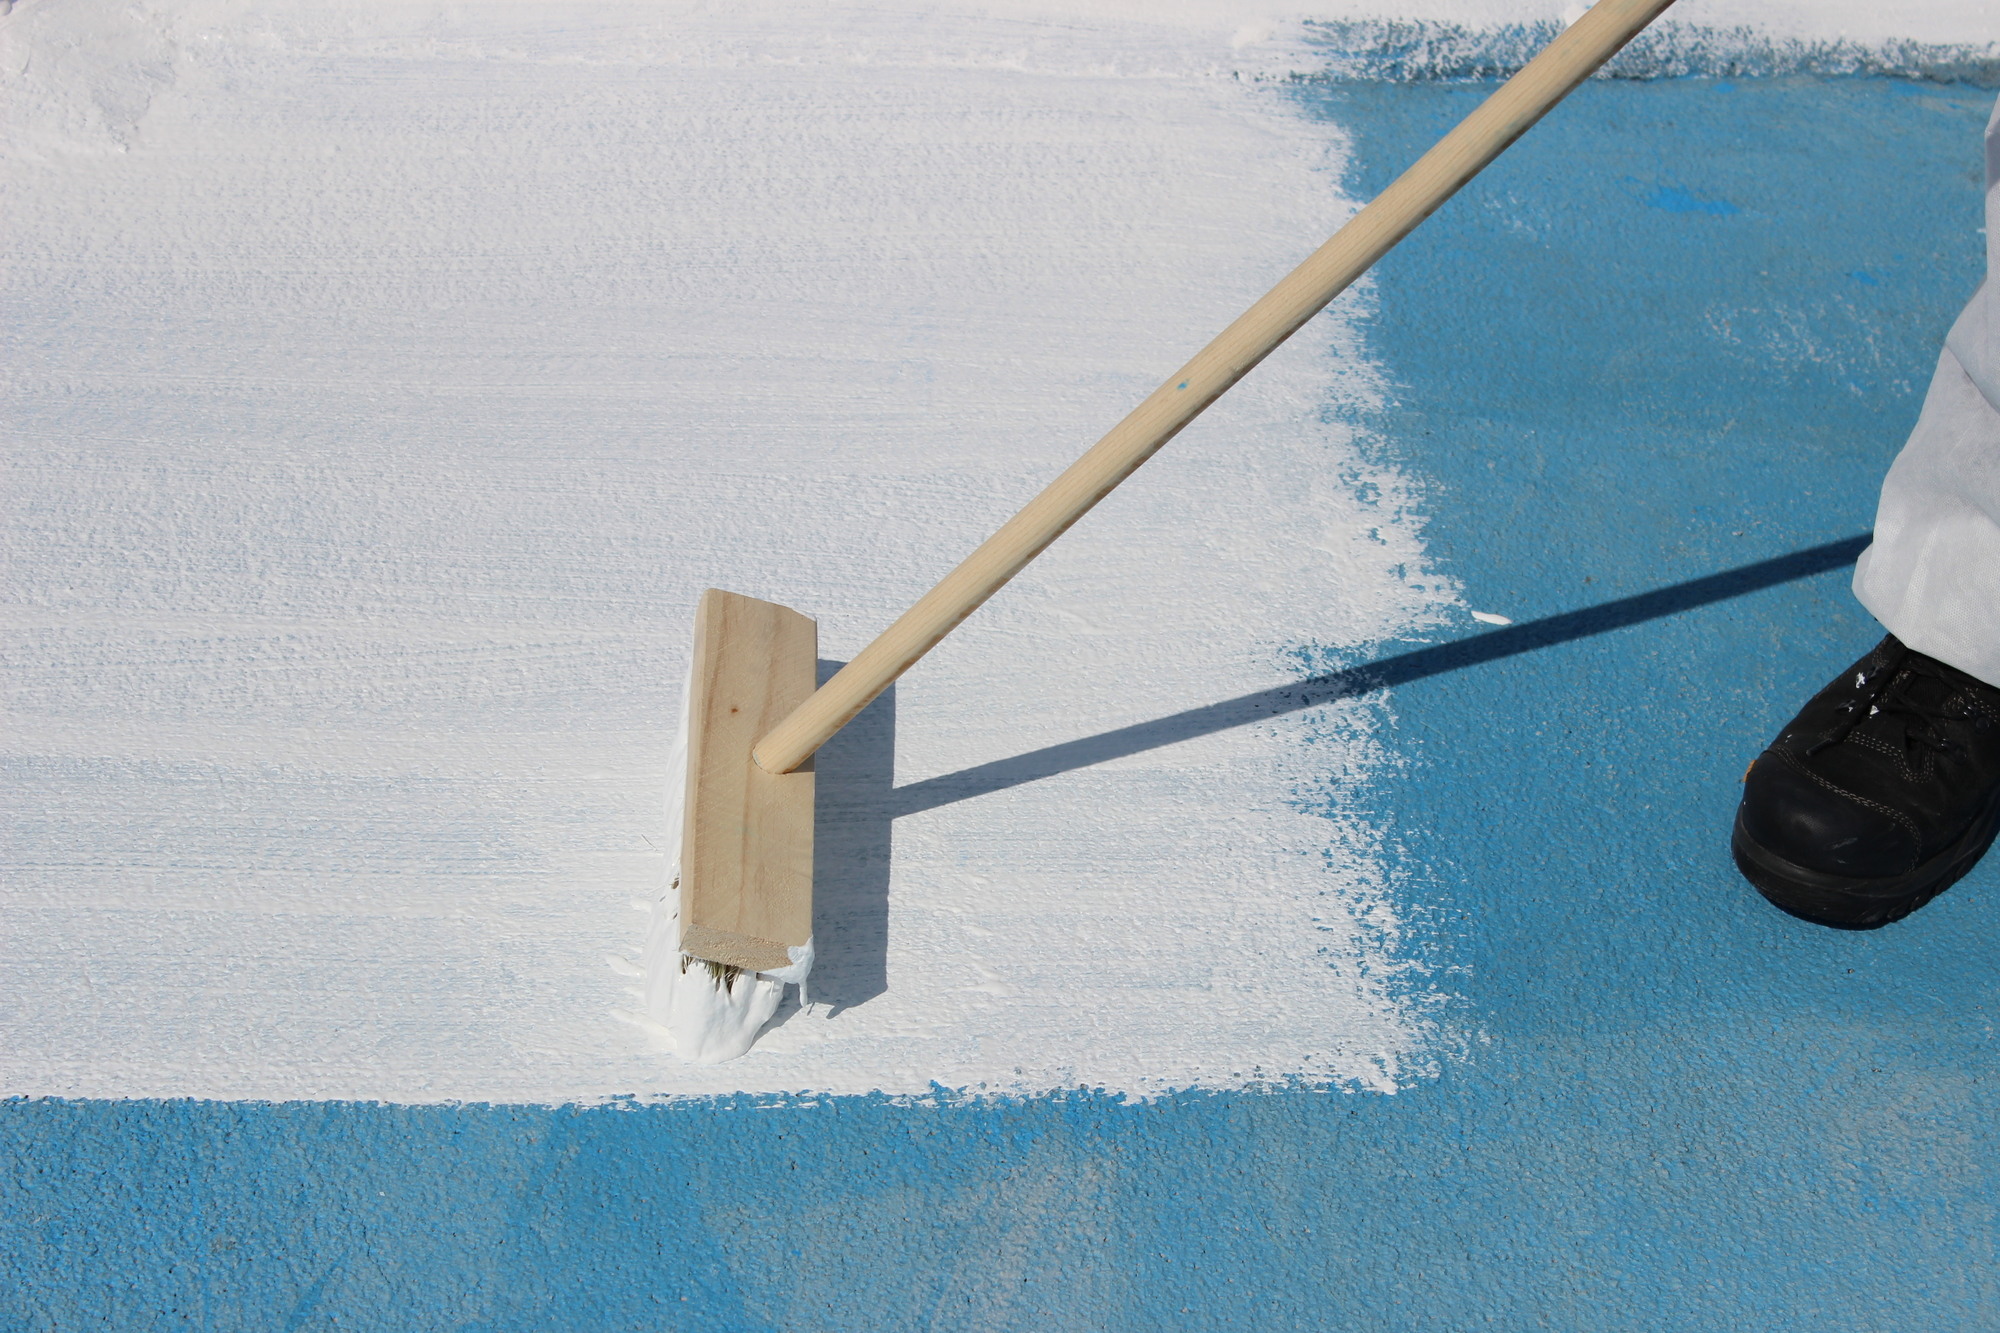 Everroof Manufactures A Variety Of Restorative Roof Coating Solutions Including Acrylic Silicone And Urethane The Systems Are Designed For Flat